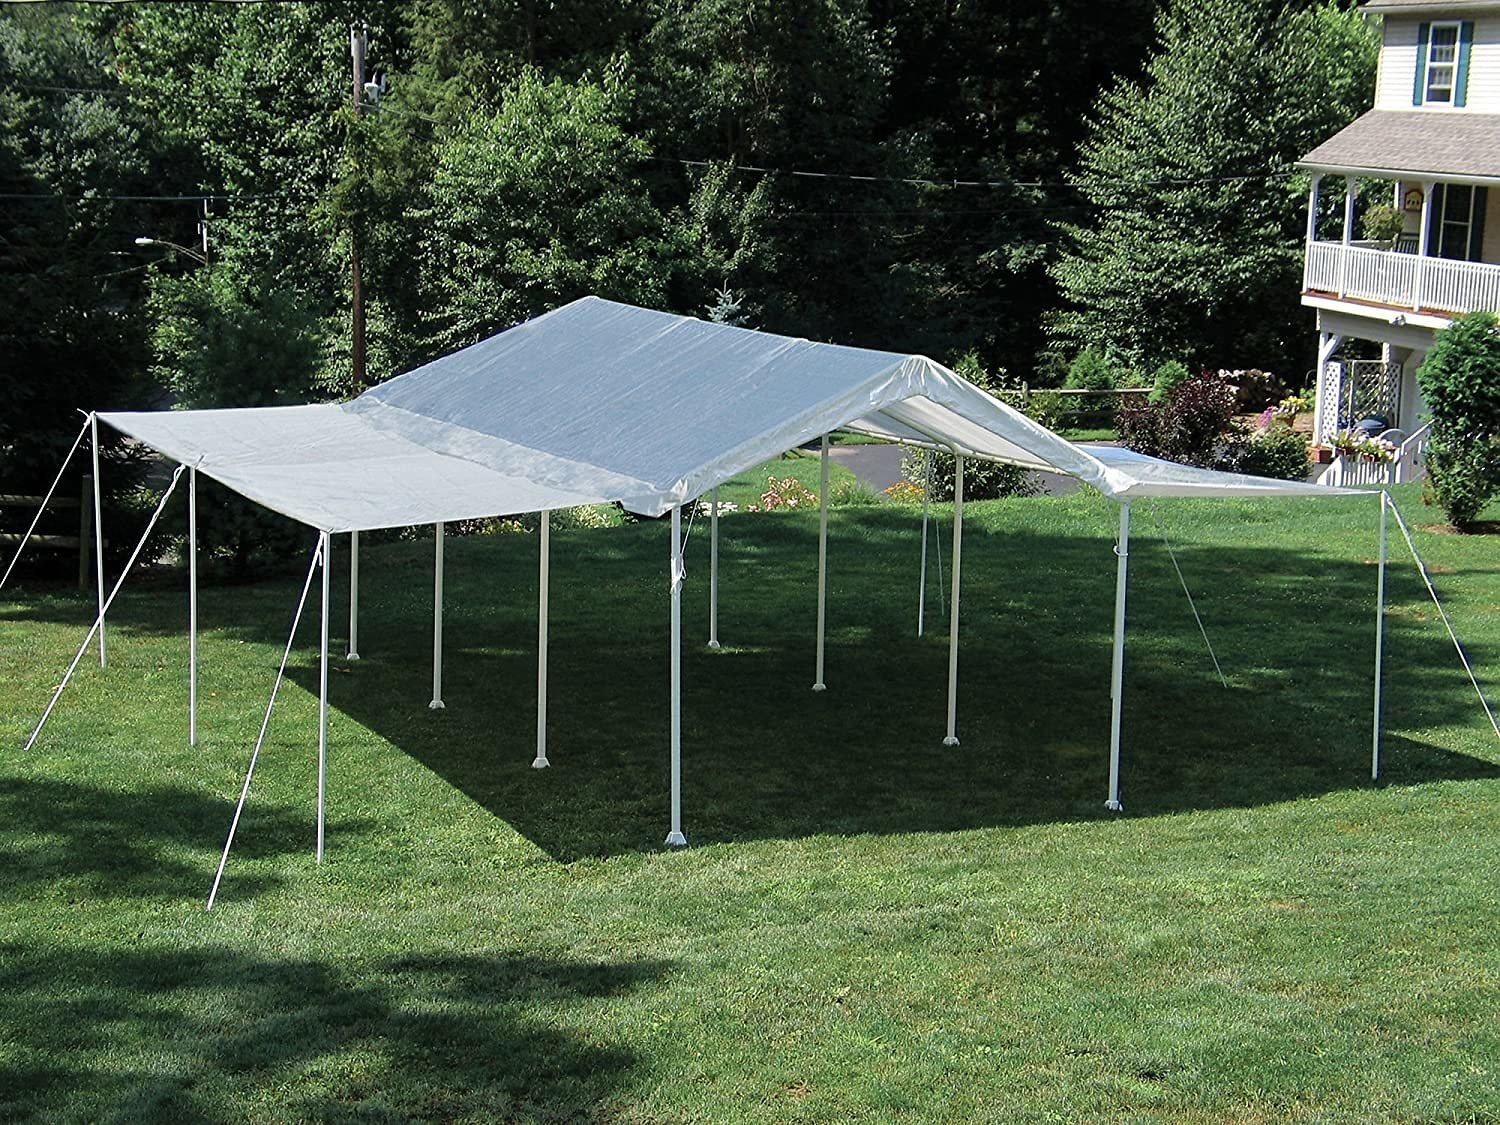 ShelterLogic MaxAP 2-in-1 Canopy with Enclosure Kit